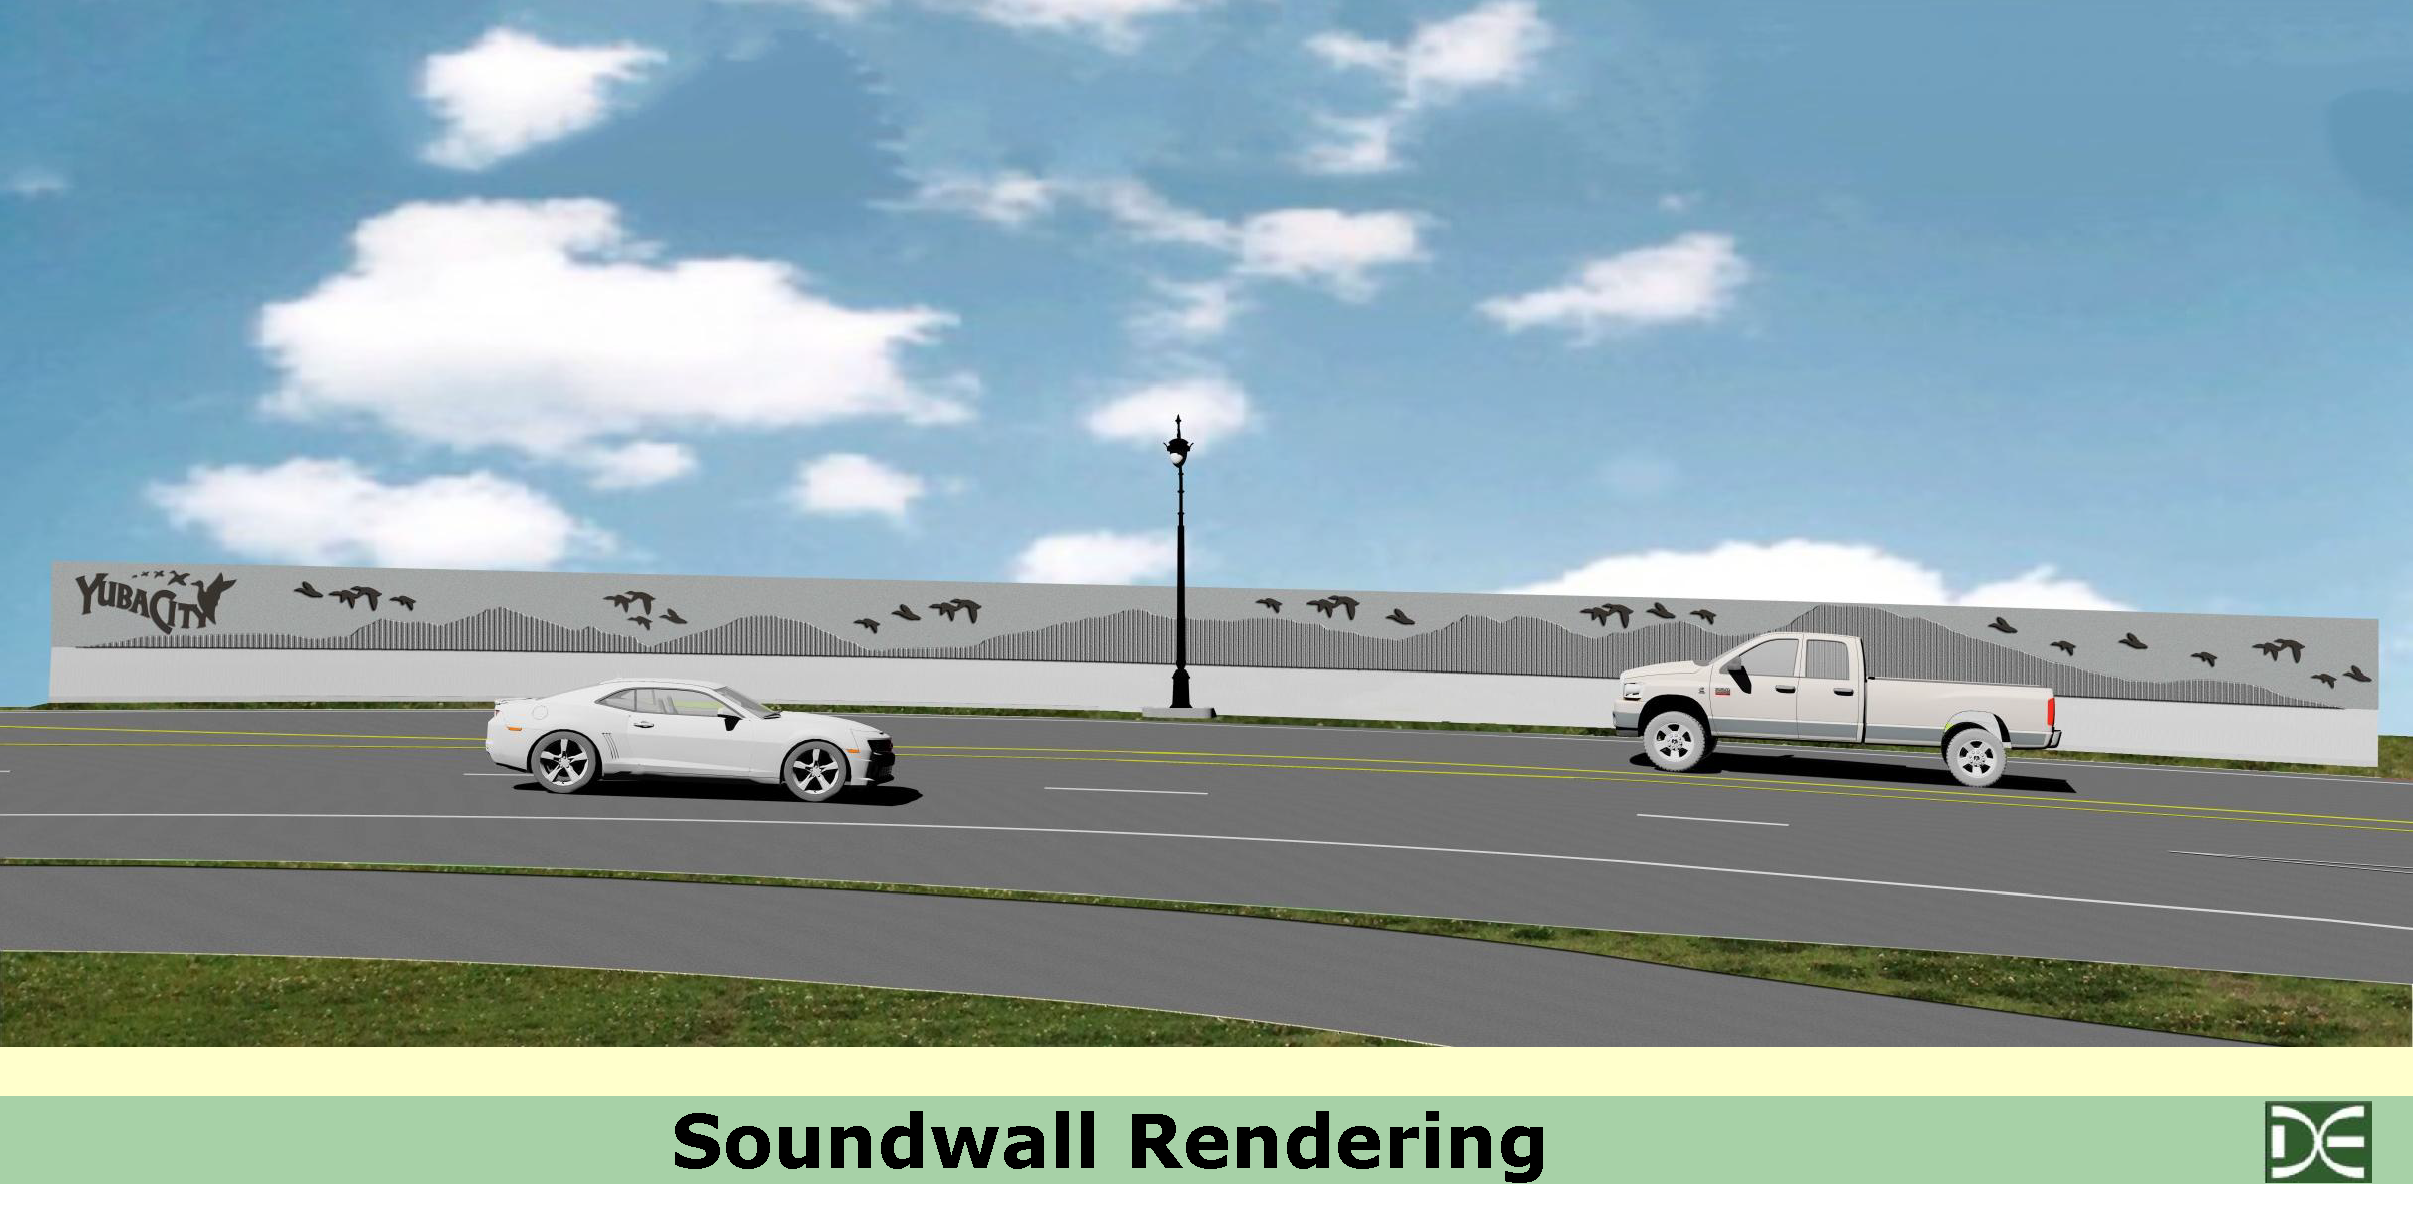 Artist rendering of the soundwall construction on the Yuba City (Bridget Street) side of the 5th Street Bridge.